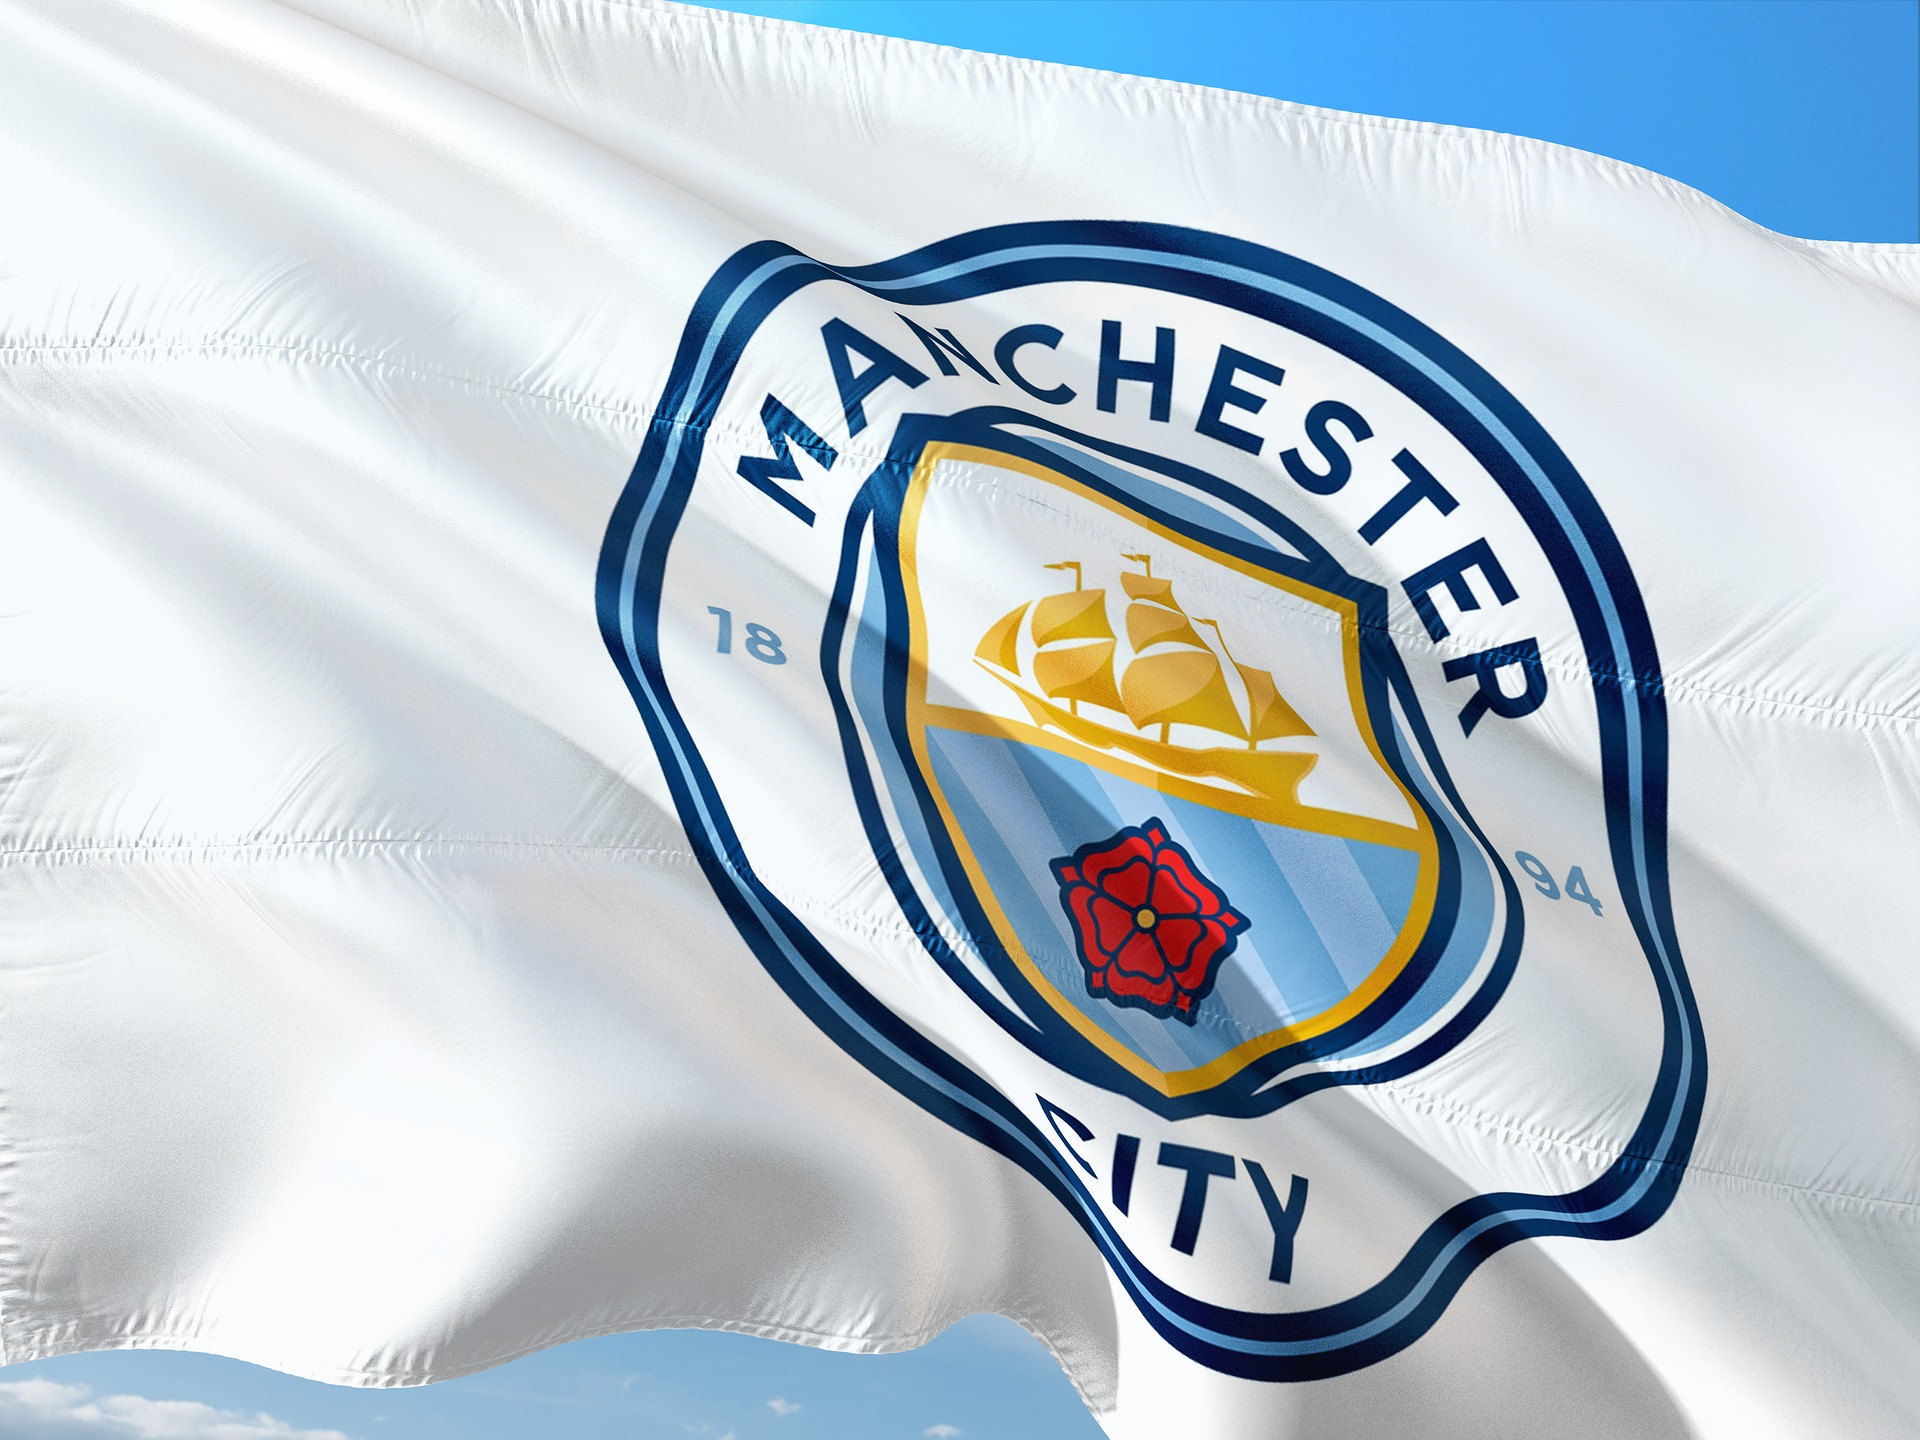 Manchester City favourites as English clubs gear up for more glory in Champions League